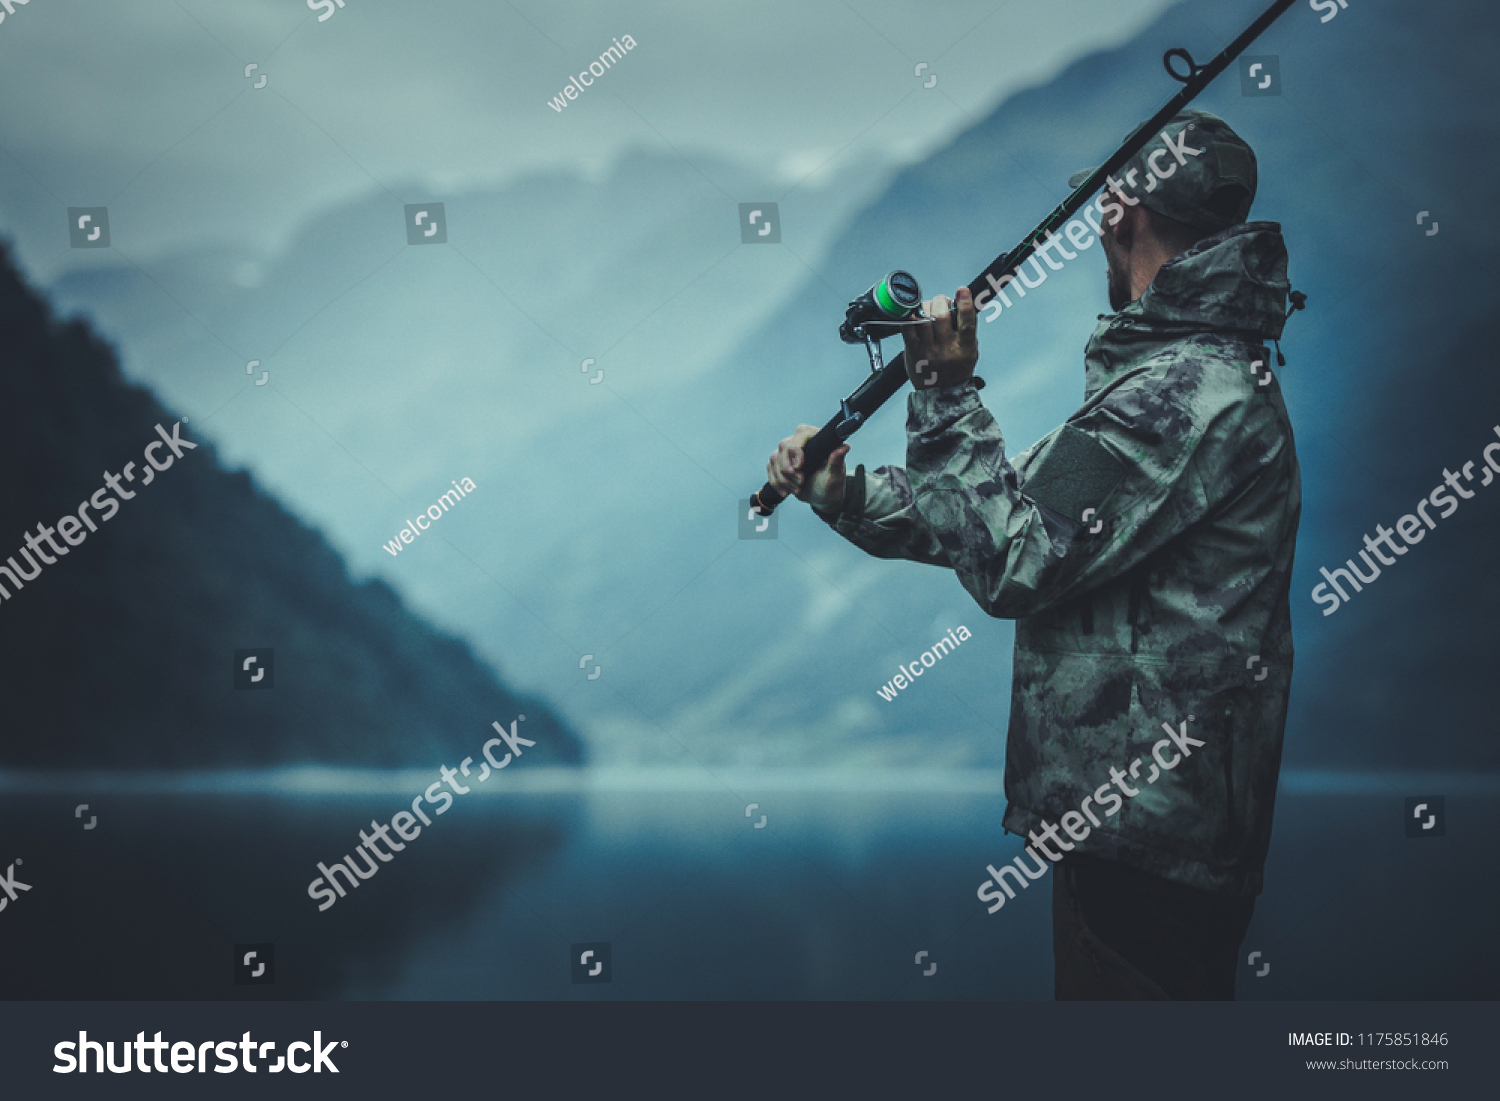 Evening Fly Fishing Time. Caucasian Fisherman with Fishing Rod on the Glacial Lake Shore. #1175851846